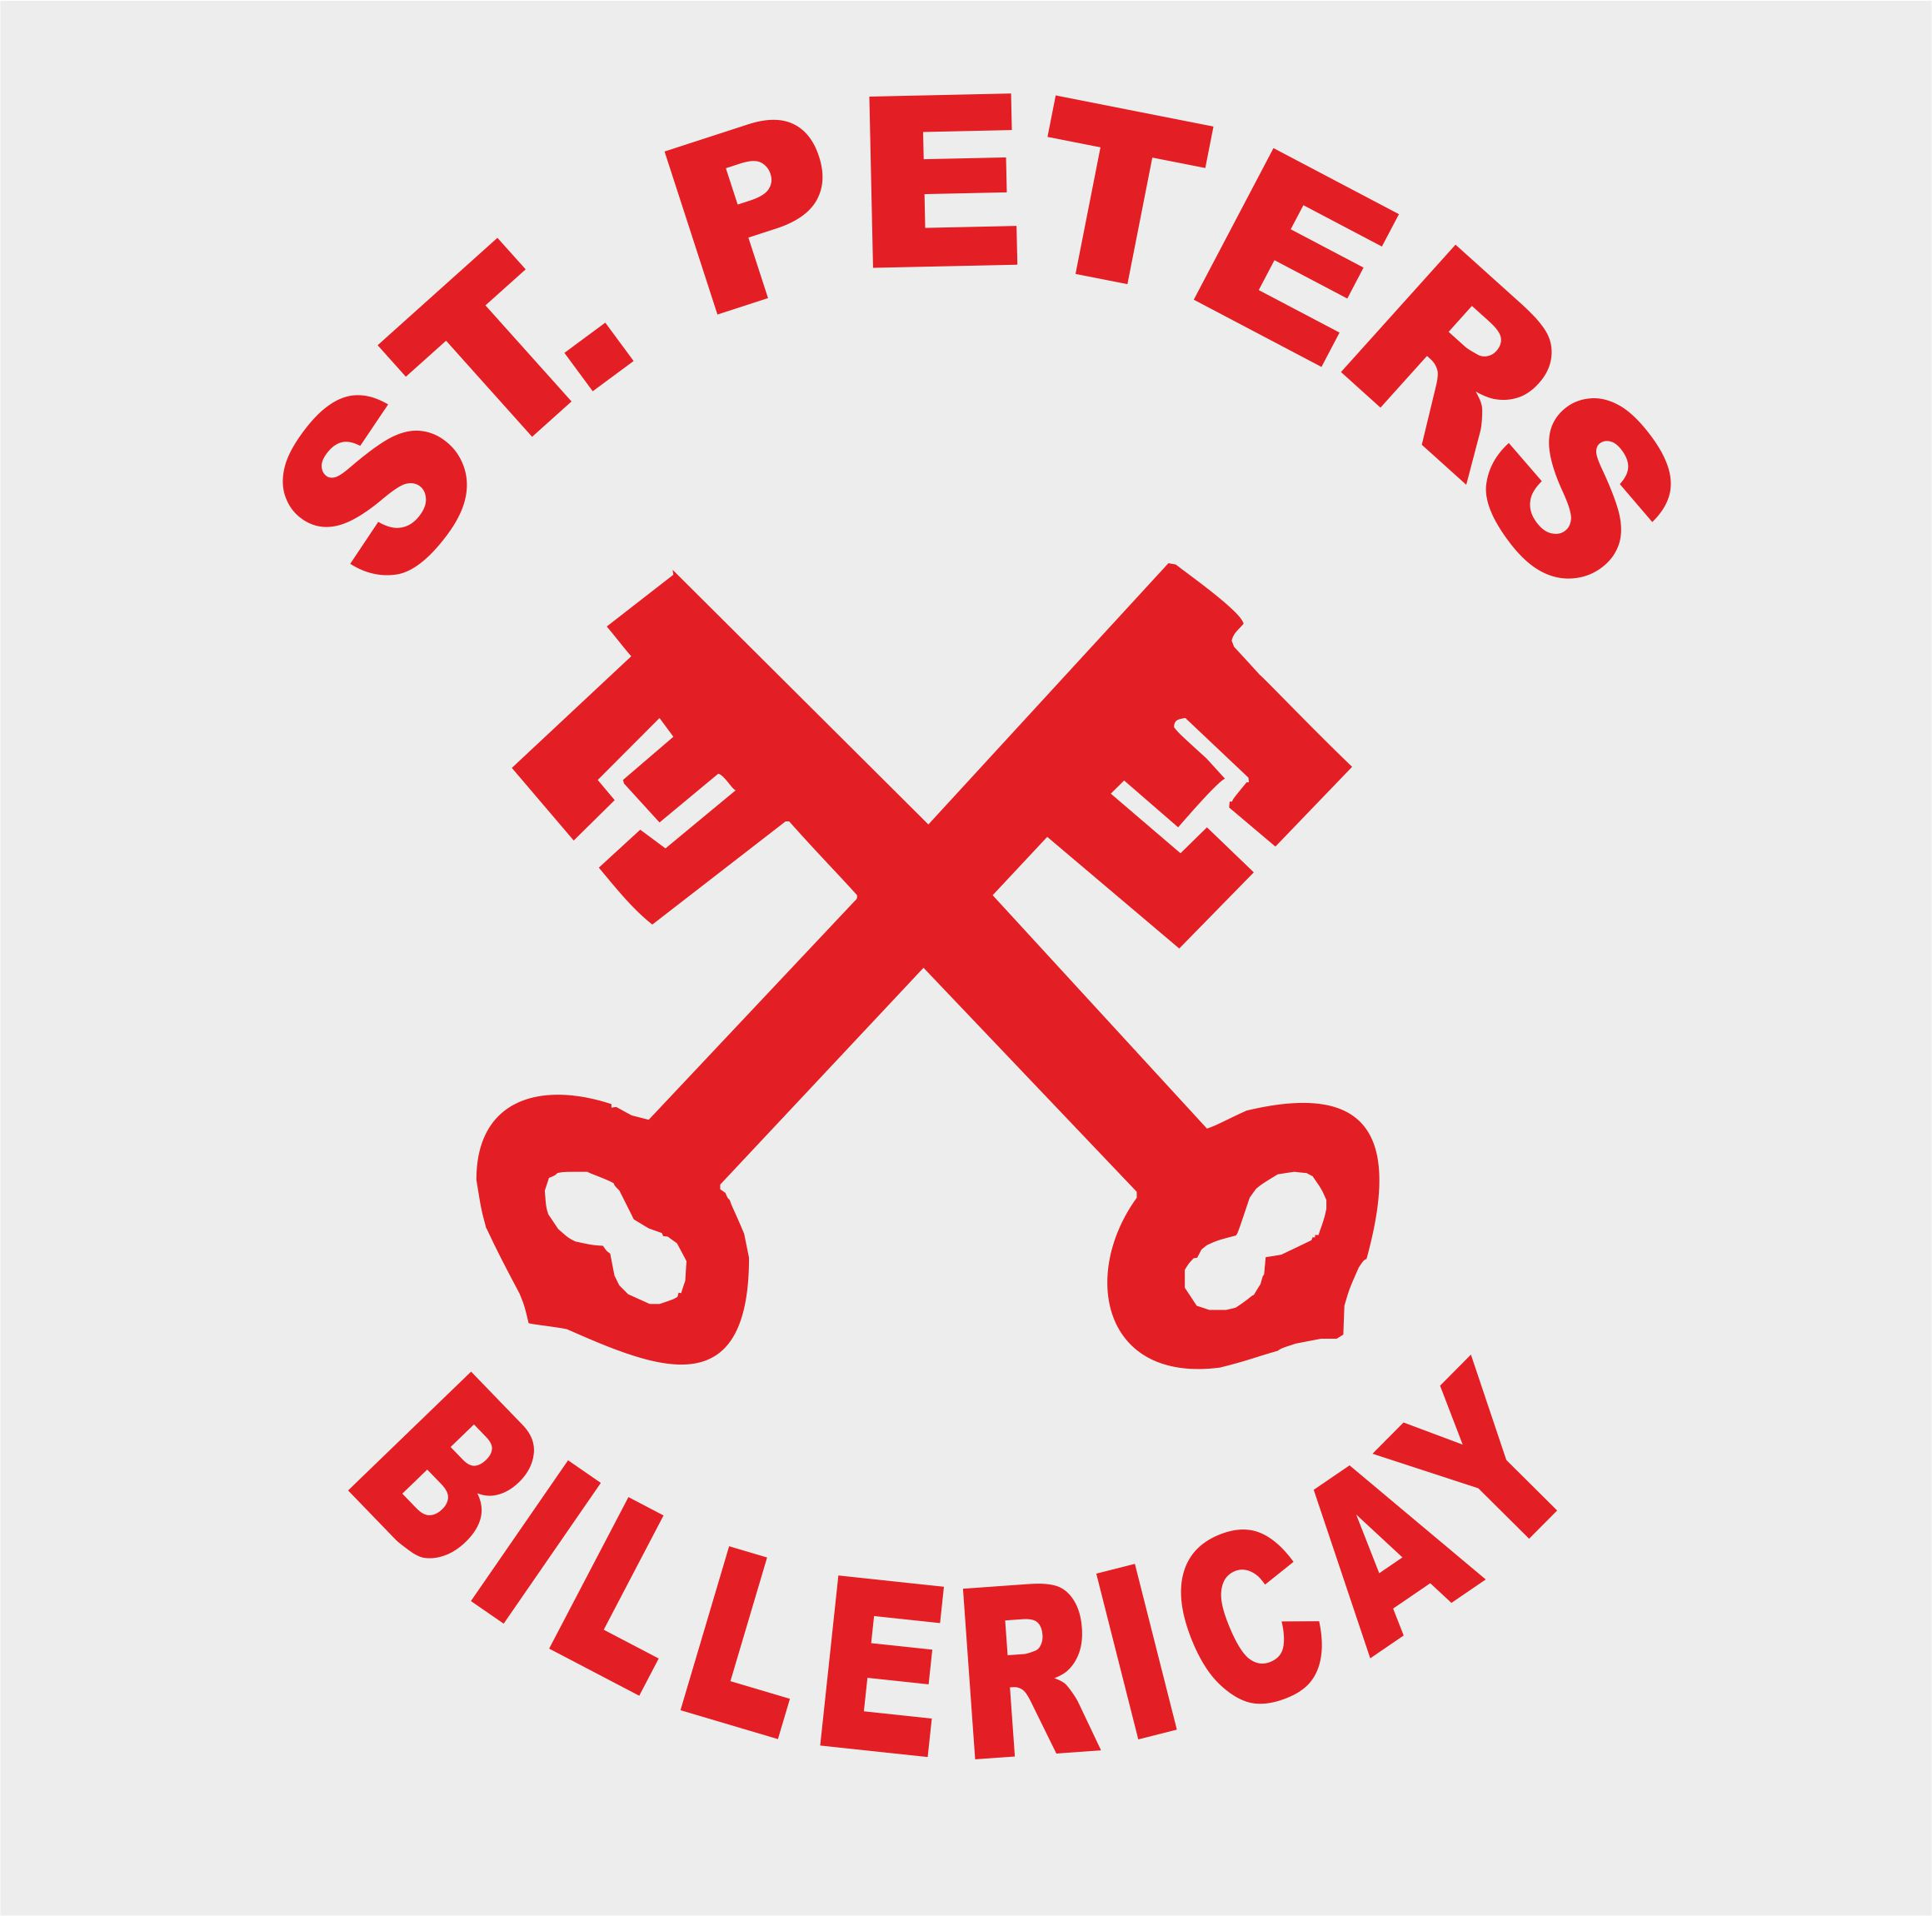 st peters LOGO1.jpg